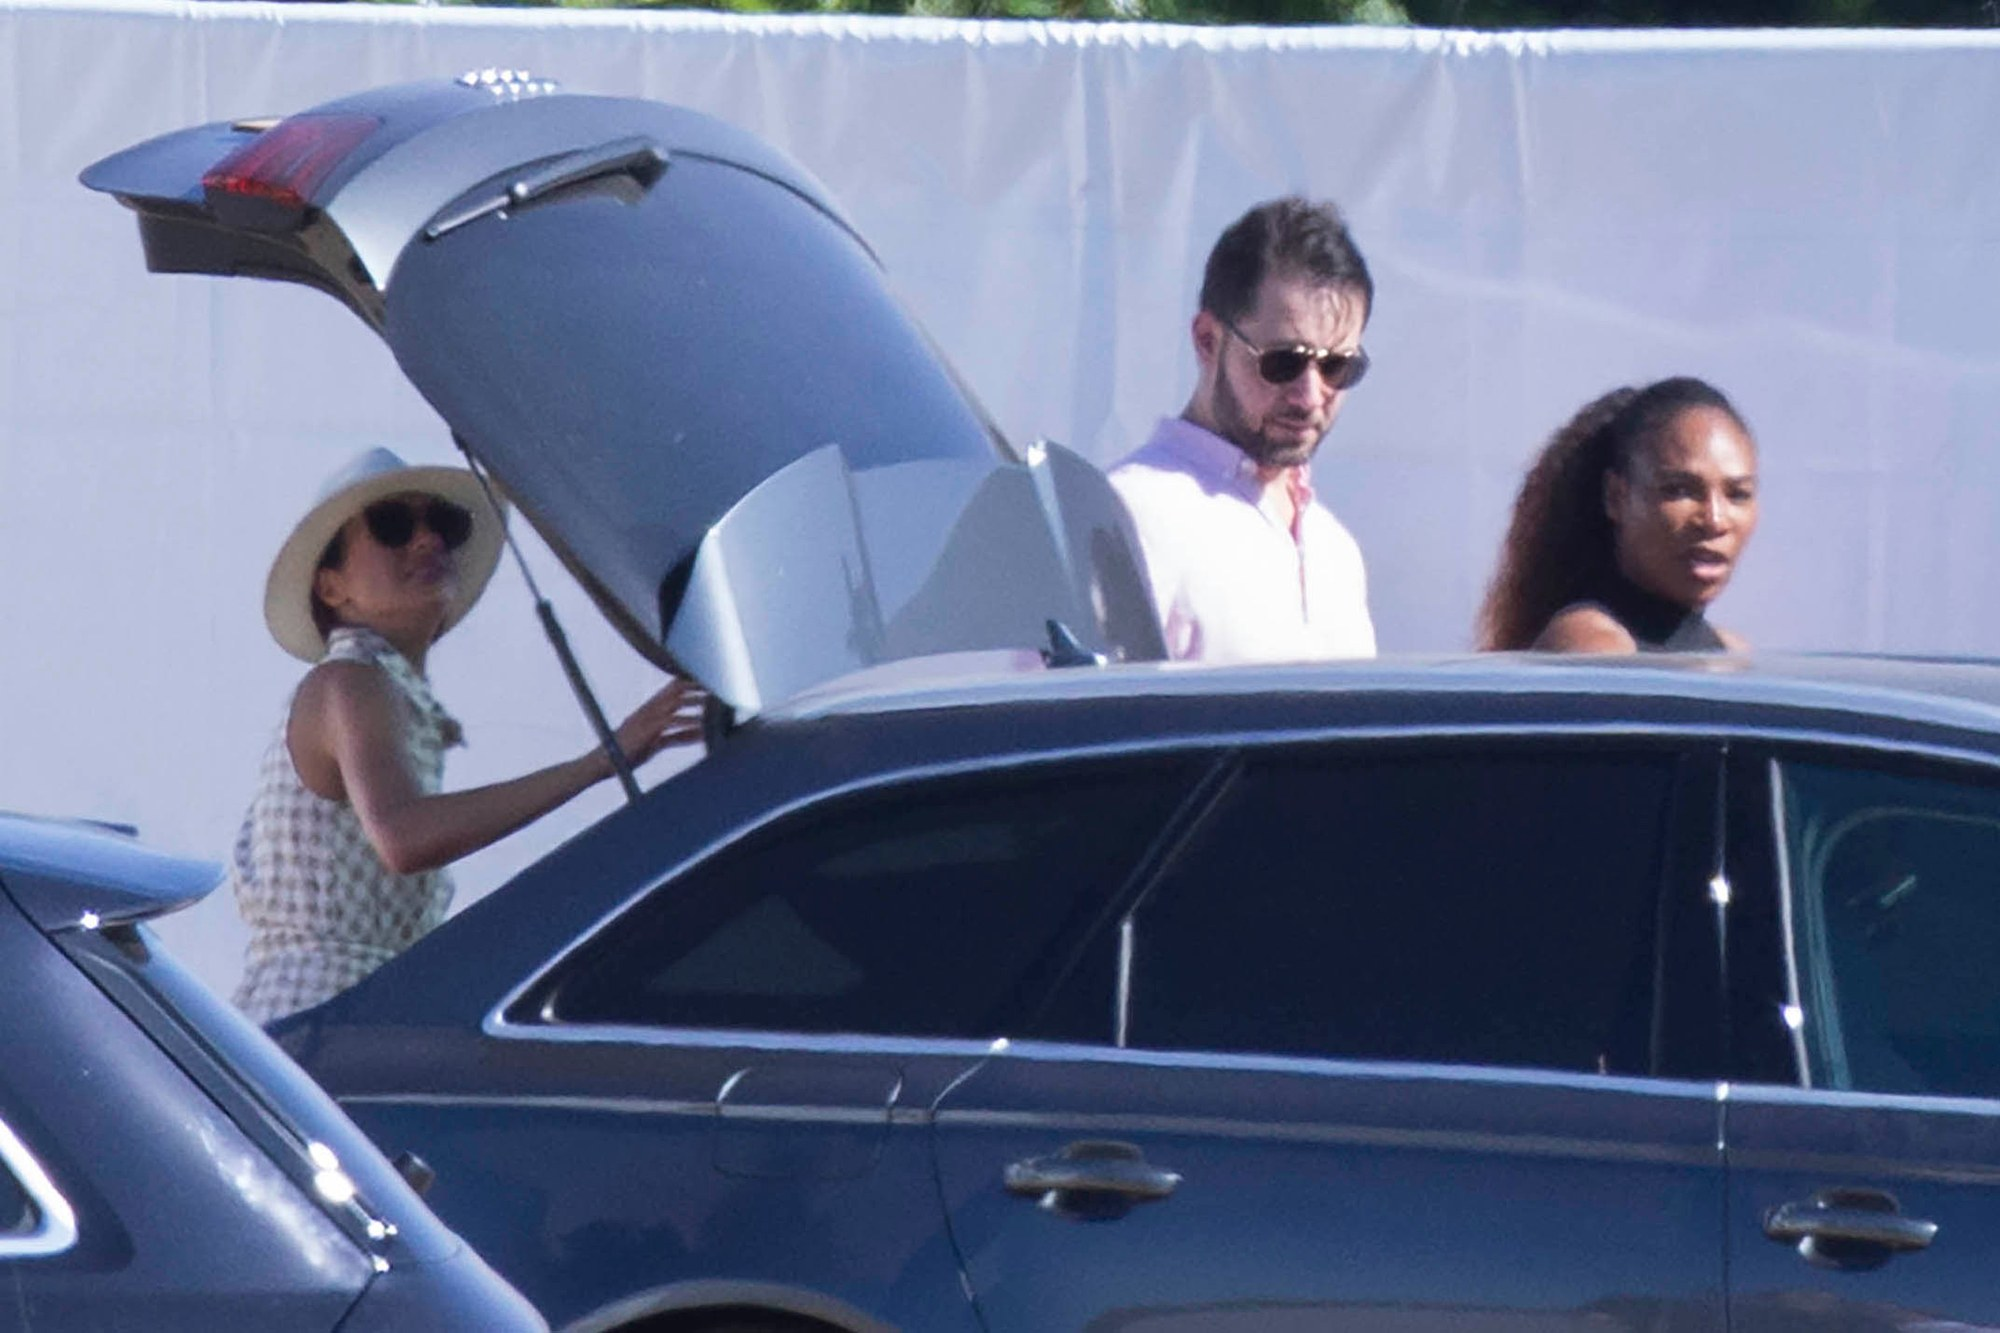 Meghan Markle, Serena Williams and her husband Alexis Ohanian all attended the Audi Polo Challenge in June, 2019